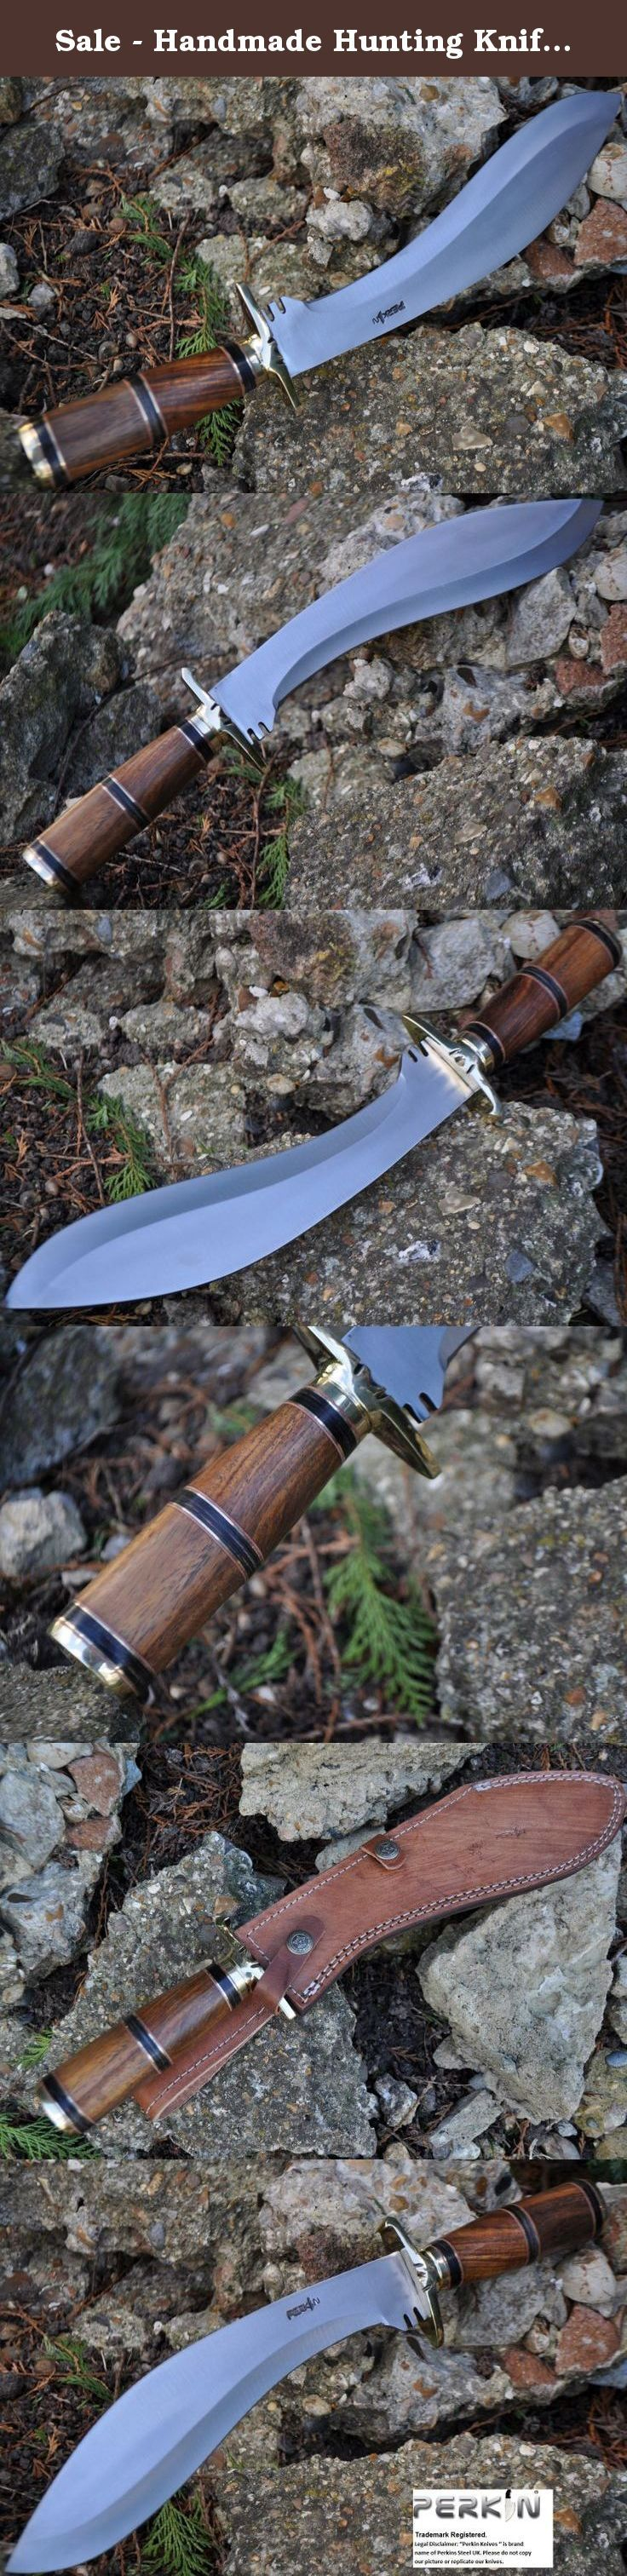 Sale - Handmade Hunting Knife - Bowie Knife - 01 Carbon Steel - Work of Art. Over all Length : 15.0 inches, blade length: 10.0 inches, Burl Wood Handle 5.0 inches . By placing an order for this product, you declare that you are 18 years of age or over. This item must be used responsibly and appropriately.